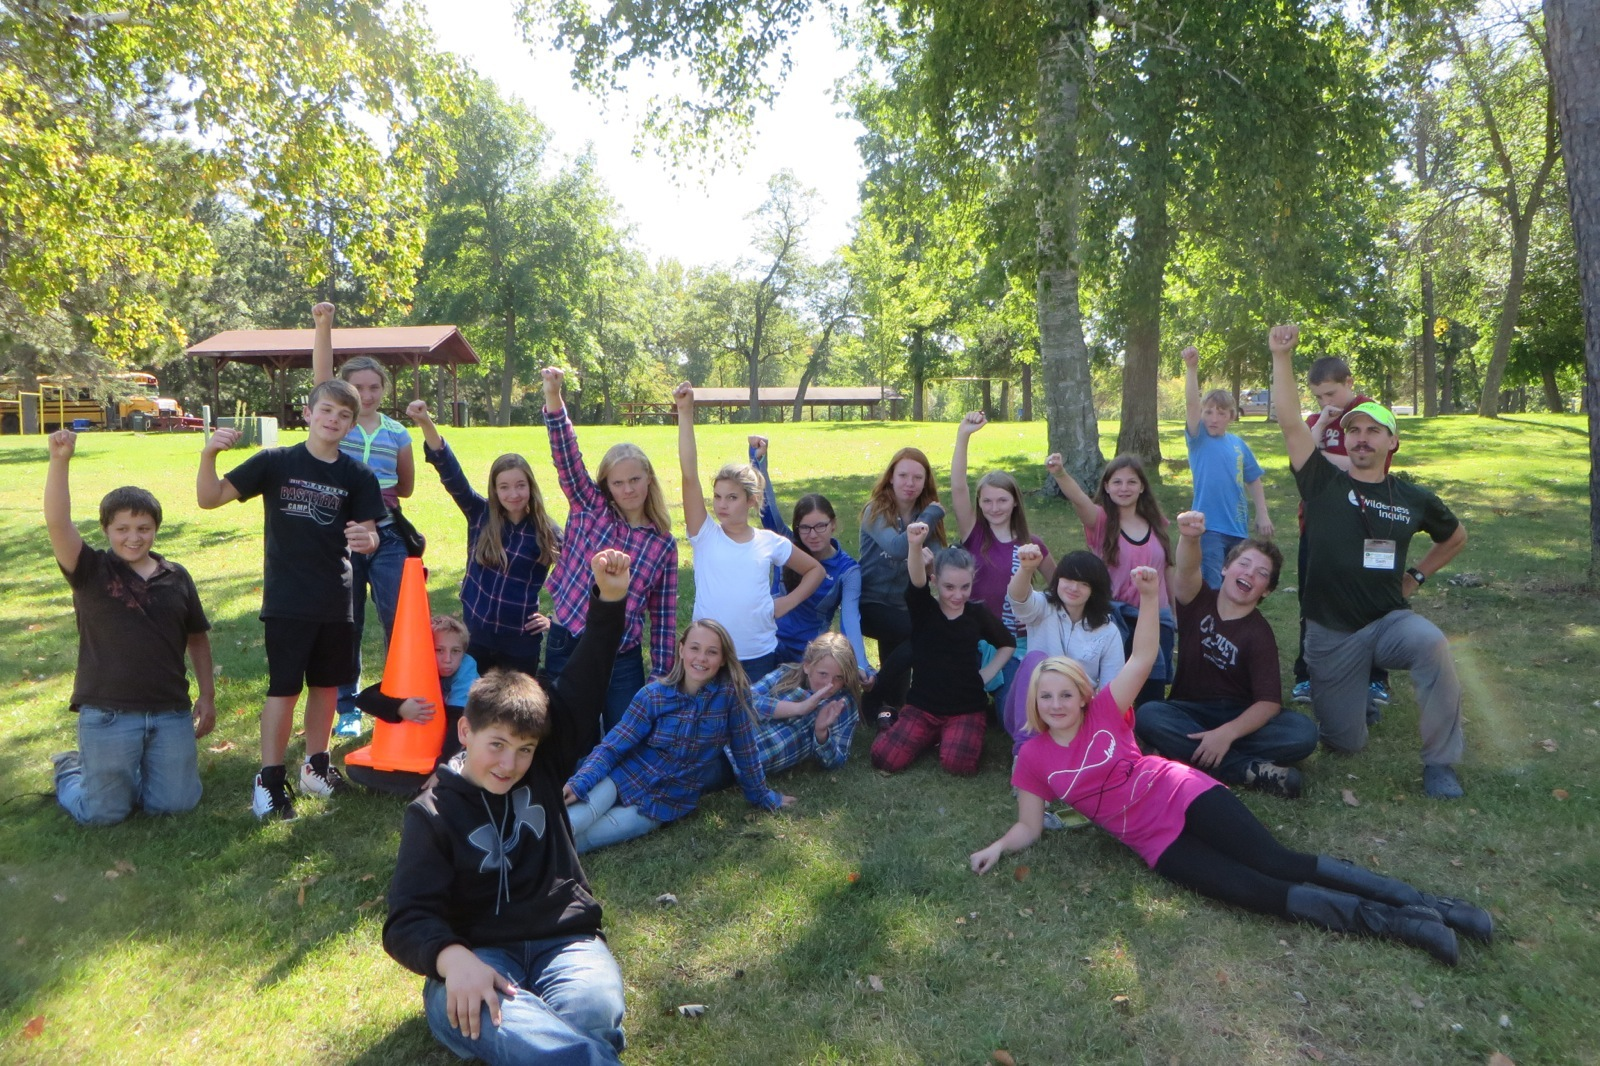 group photo of students and staff with one arm up pointing towards the sky in a park after canoeing the Mississippi